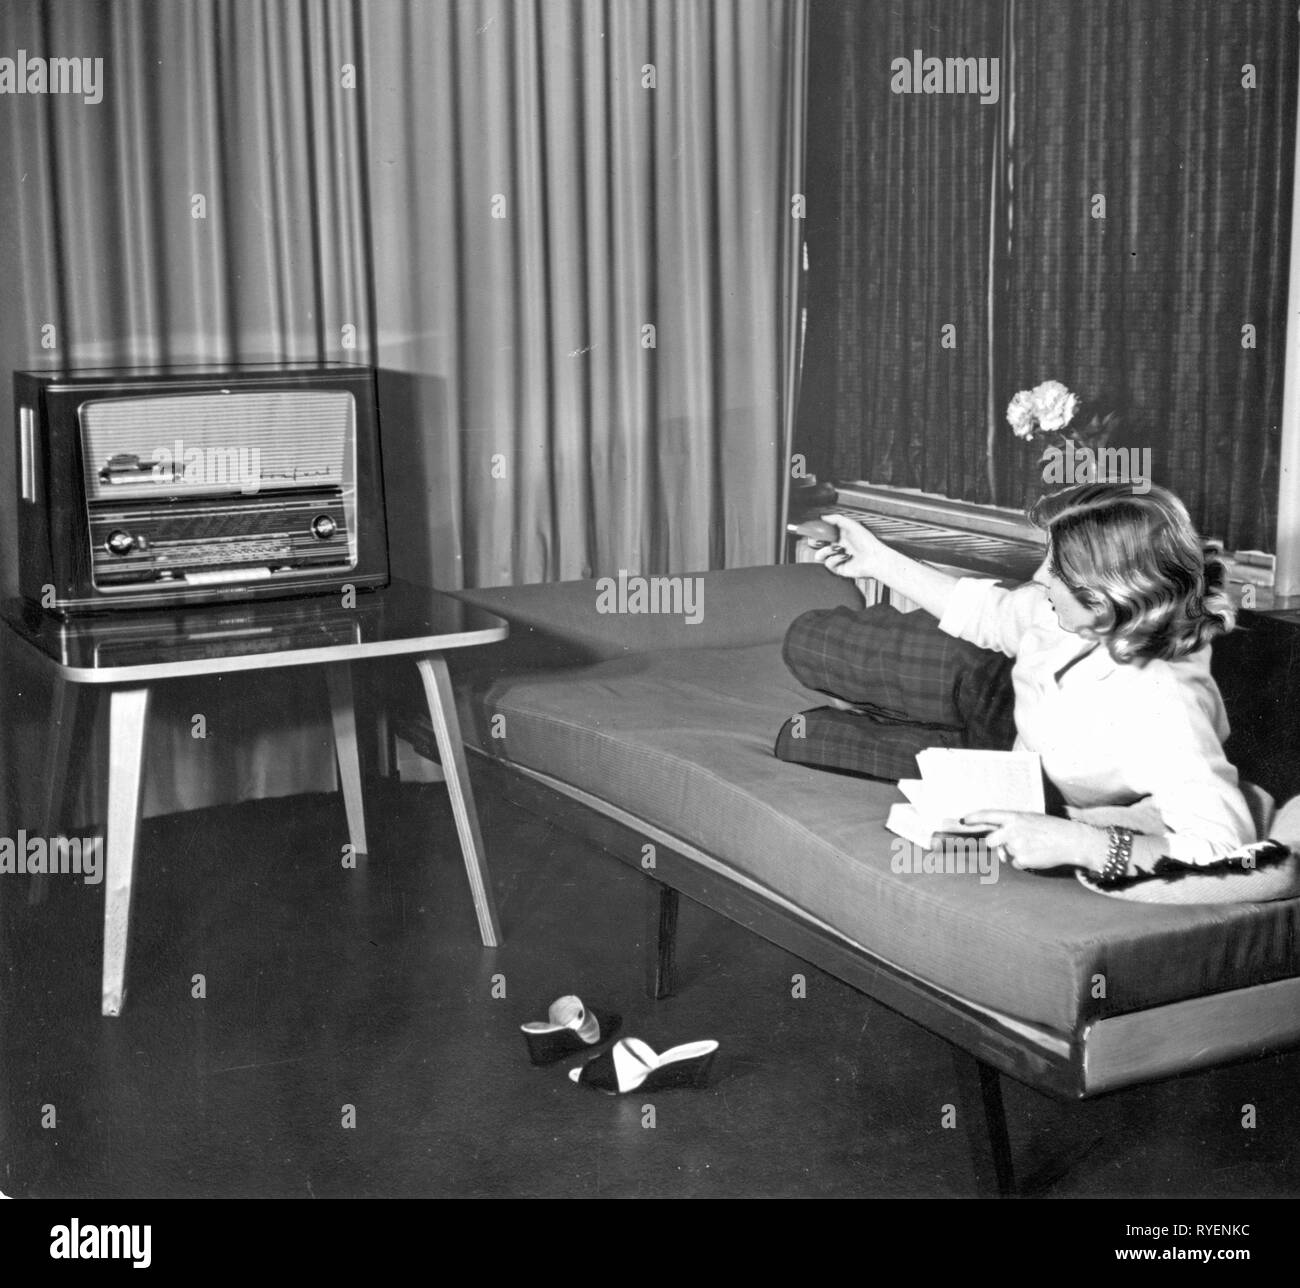 broadcast, radio, radio sets, Tonfunk Zauberperle W286F with 'magic switch', a young woman on a bed is operating the remote control, Germany, 1956, Additional-Rights-Clearance-Info-Not-Available - Stock Image